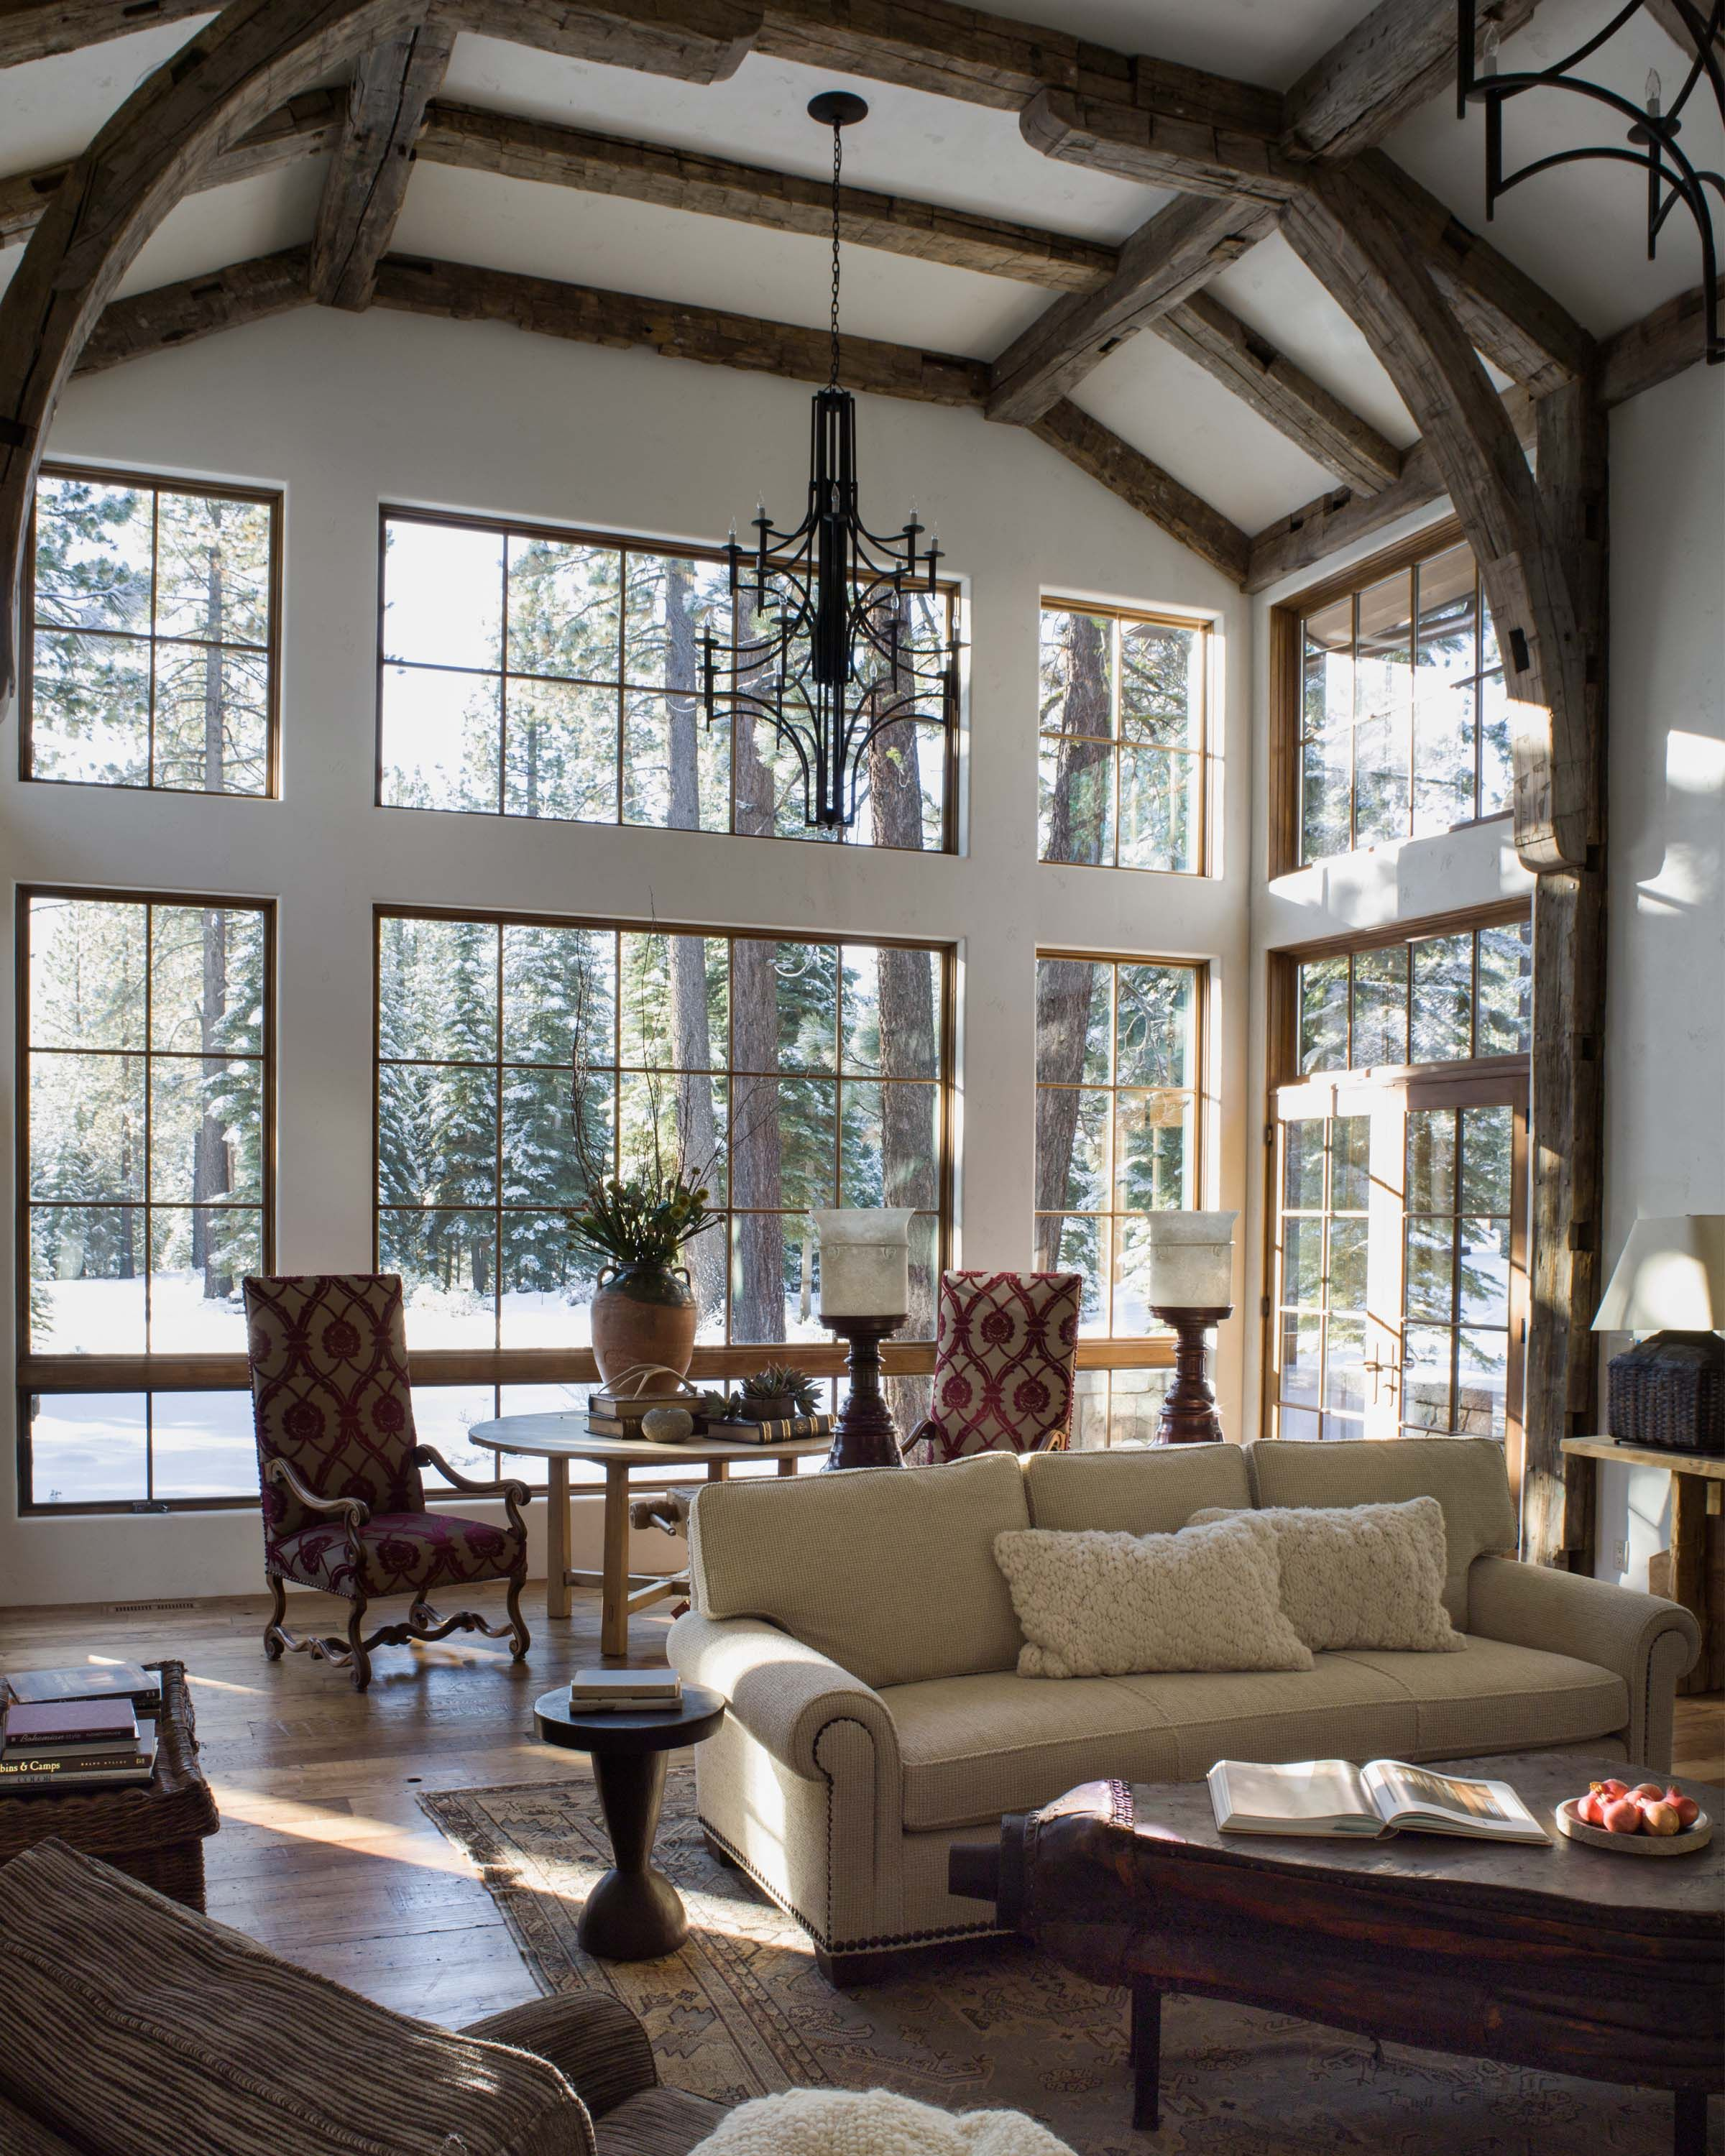 sunroom with glass walls and reclaimed timber beams